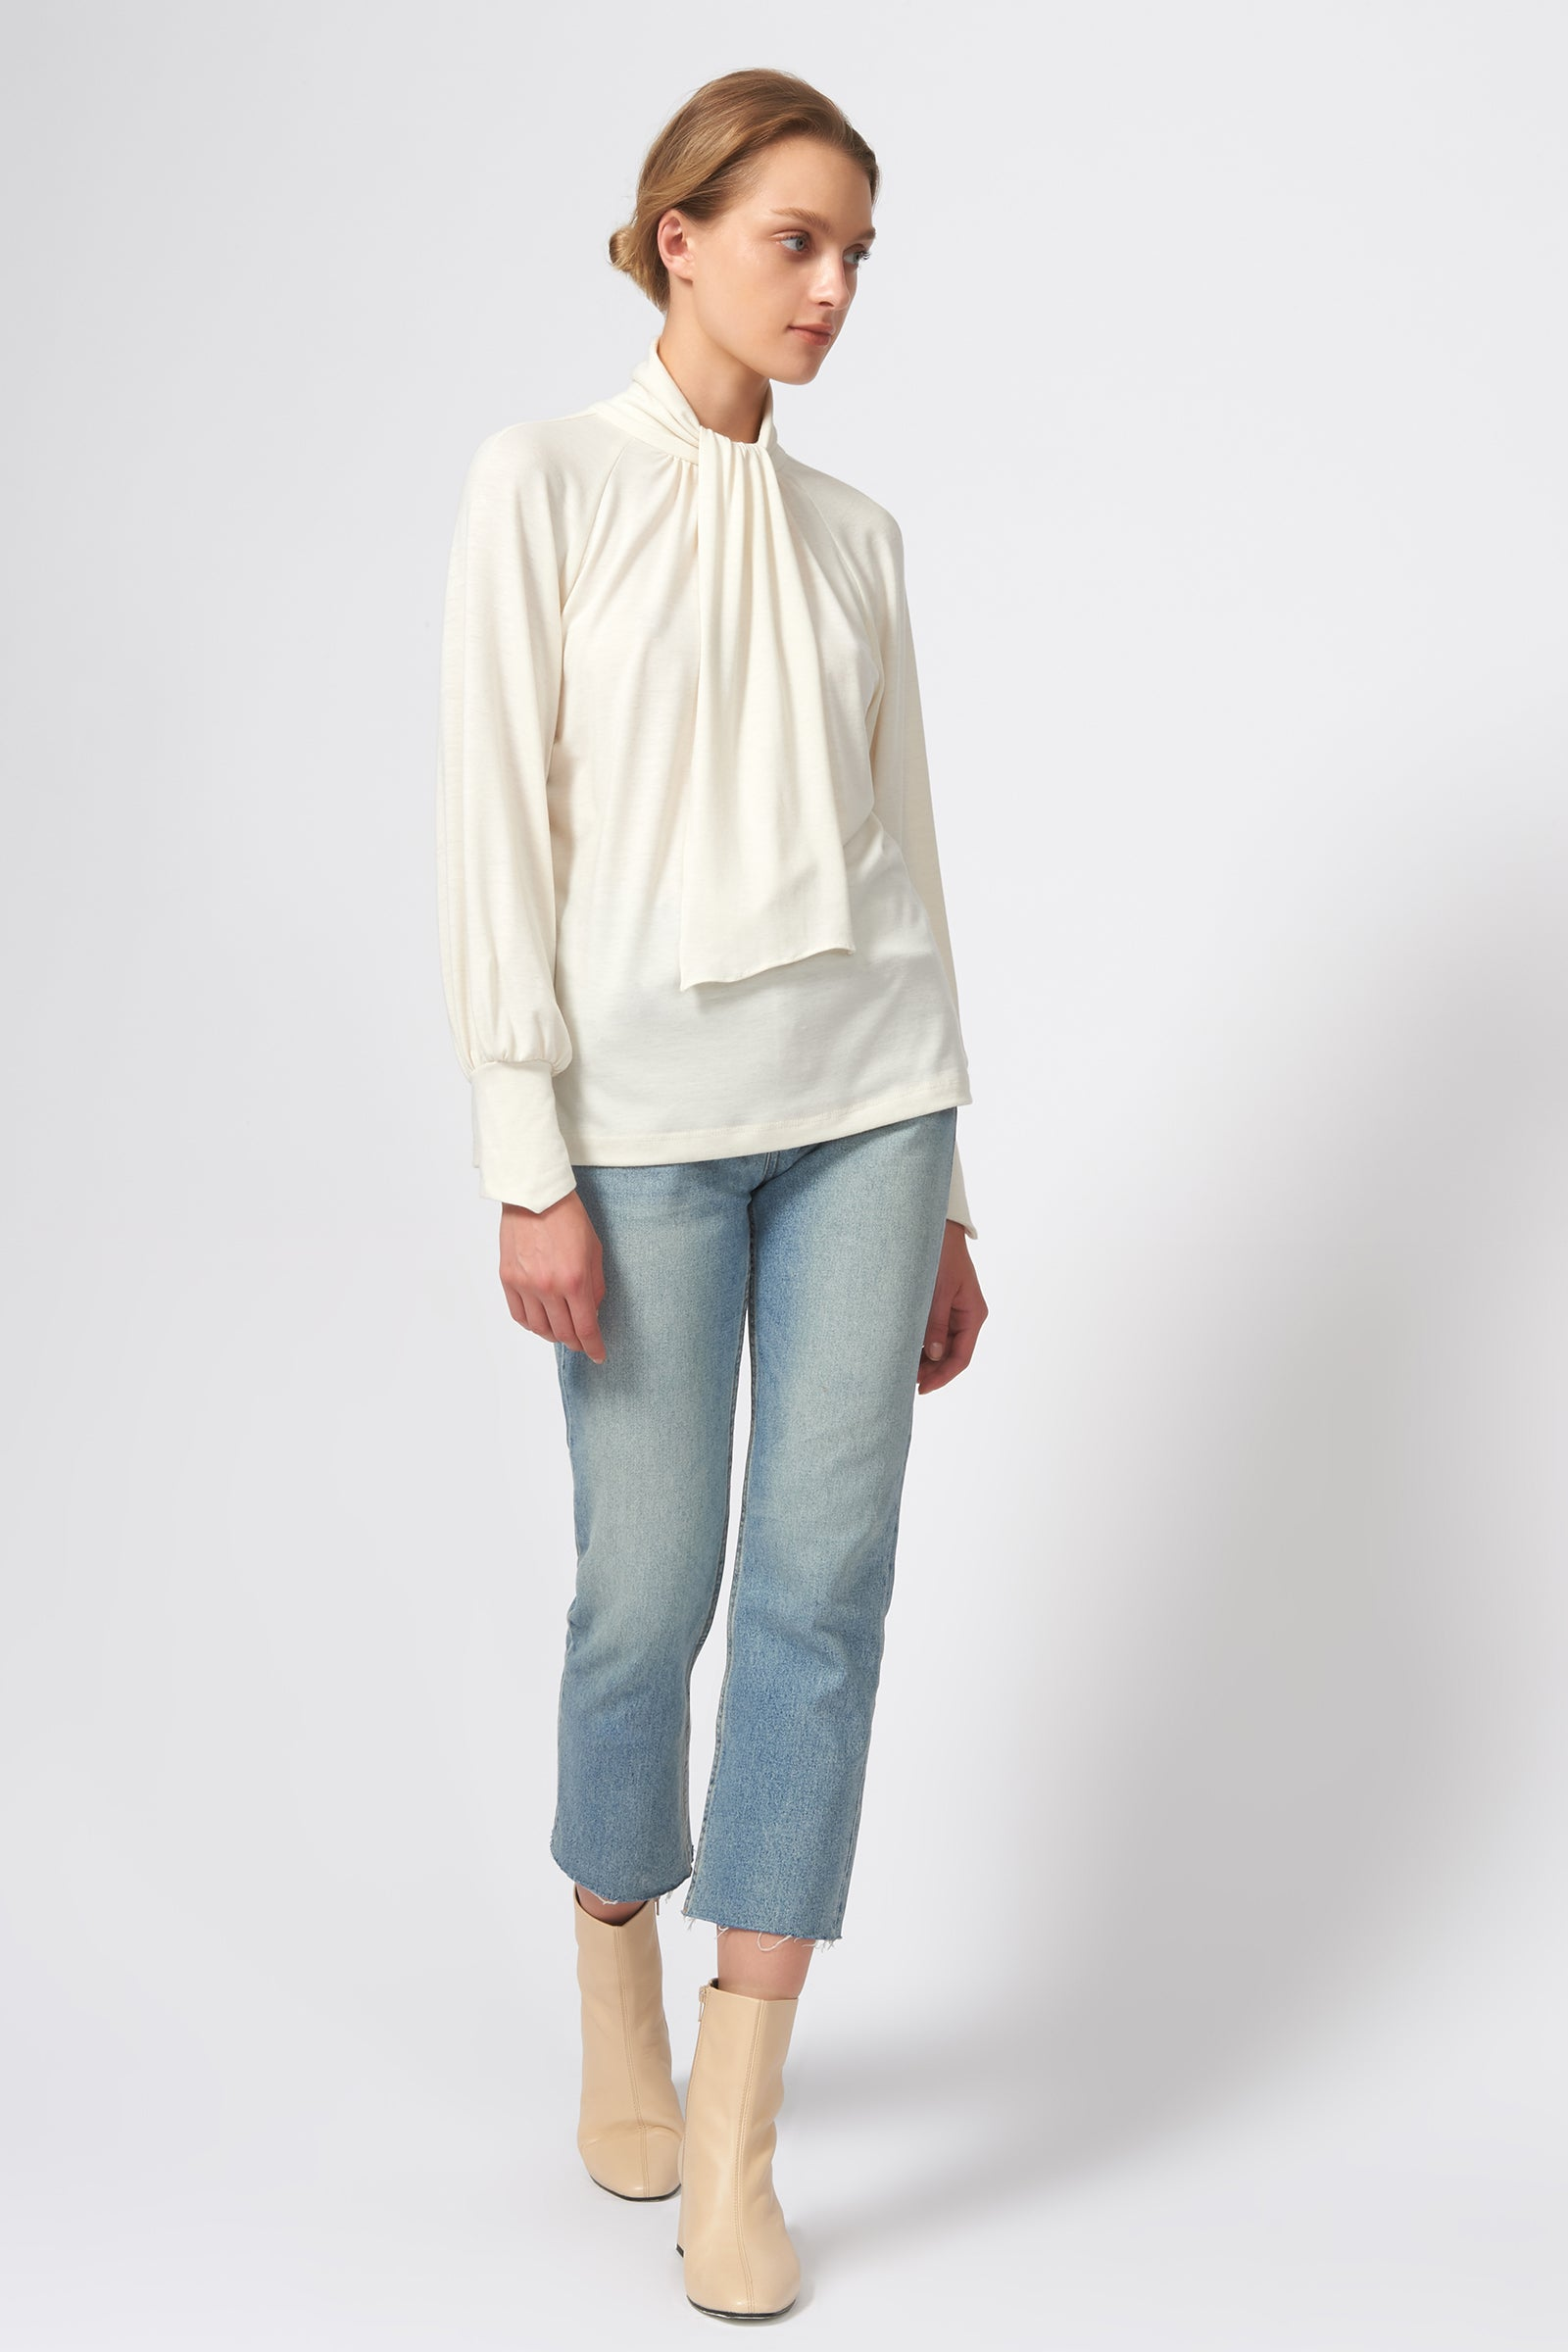 Kal Rieman Priestess Knit Blouse in Cream on Model Full Front Side View